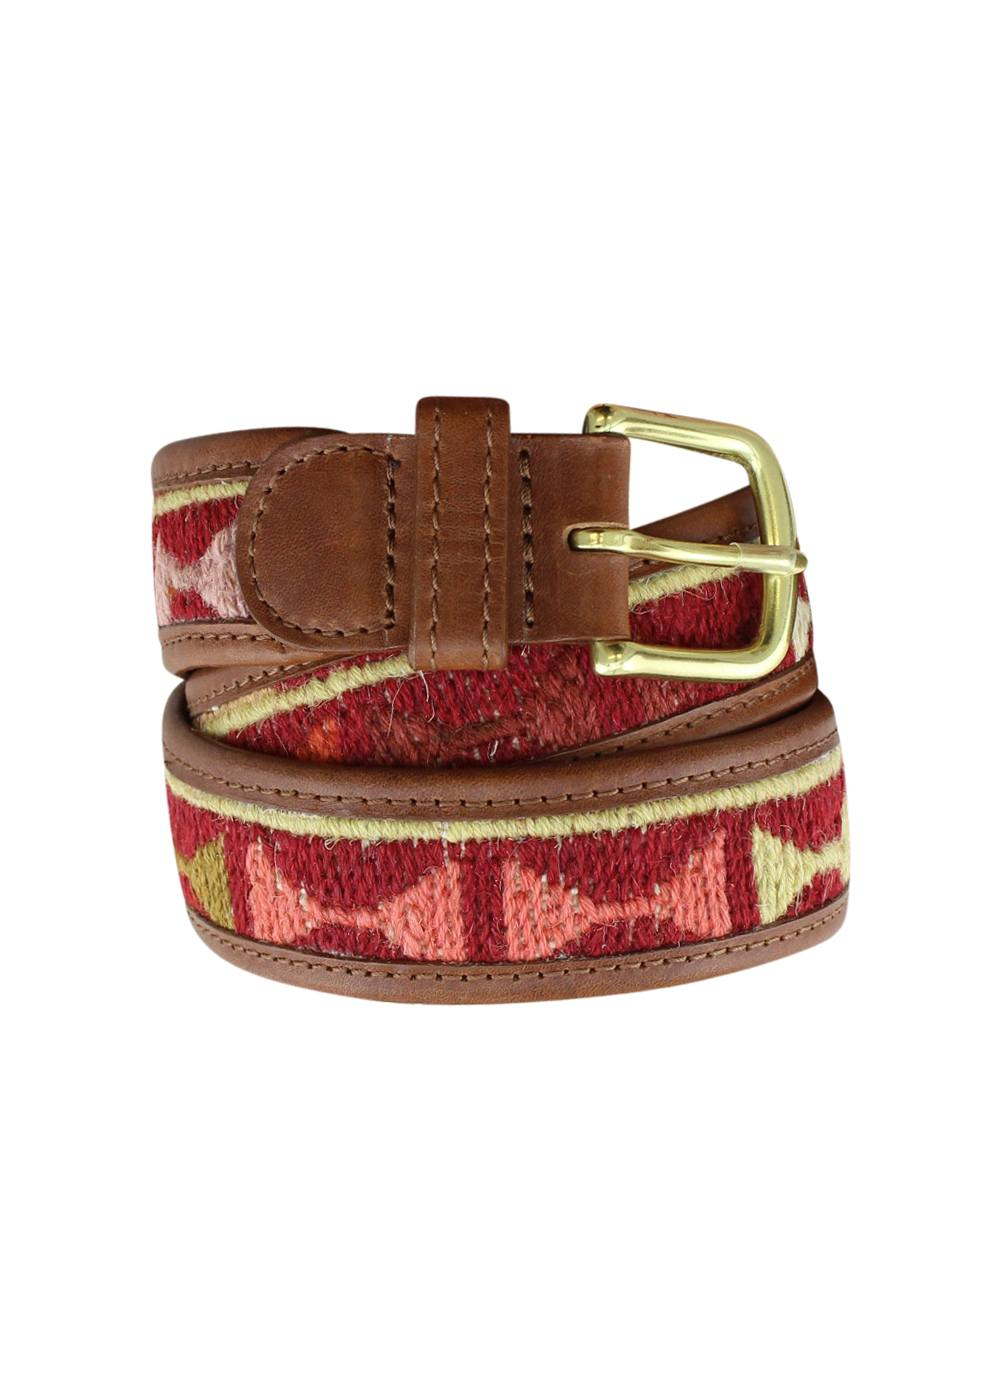 Accessories - Sumak Kilim Belt - Size 38